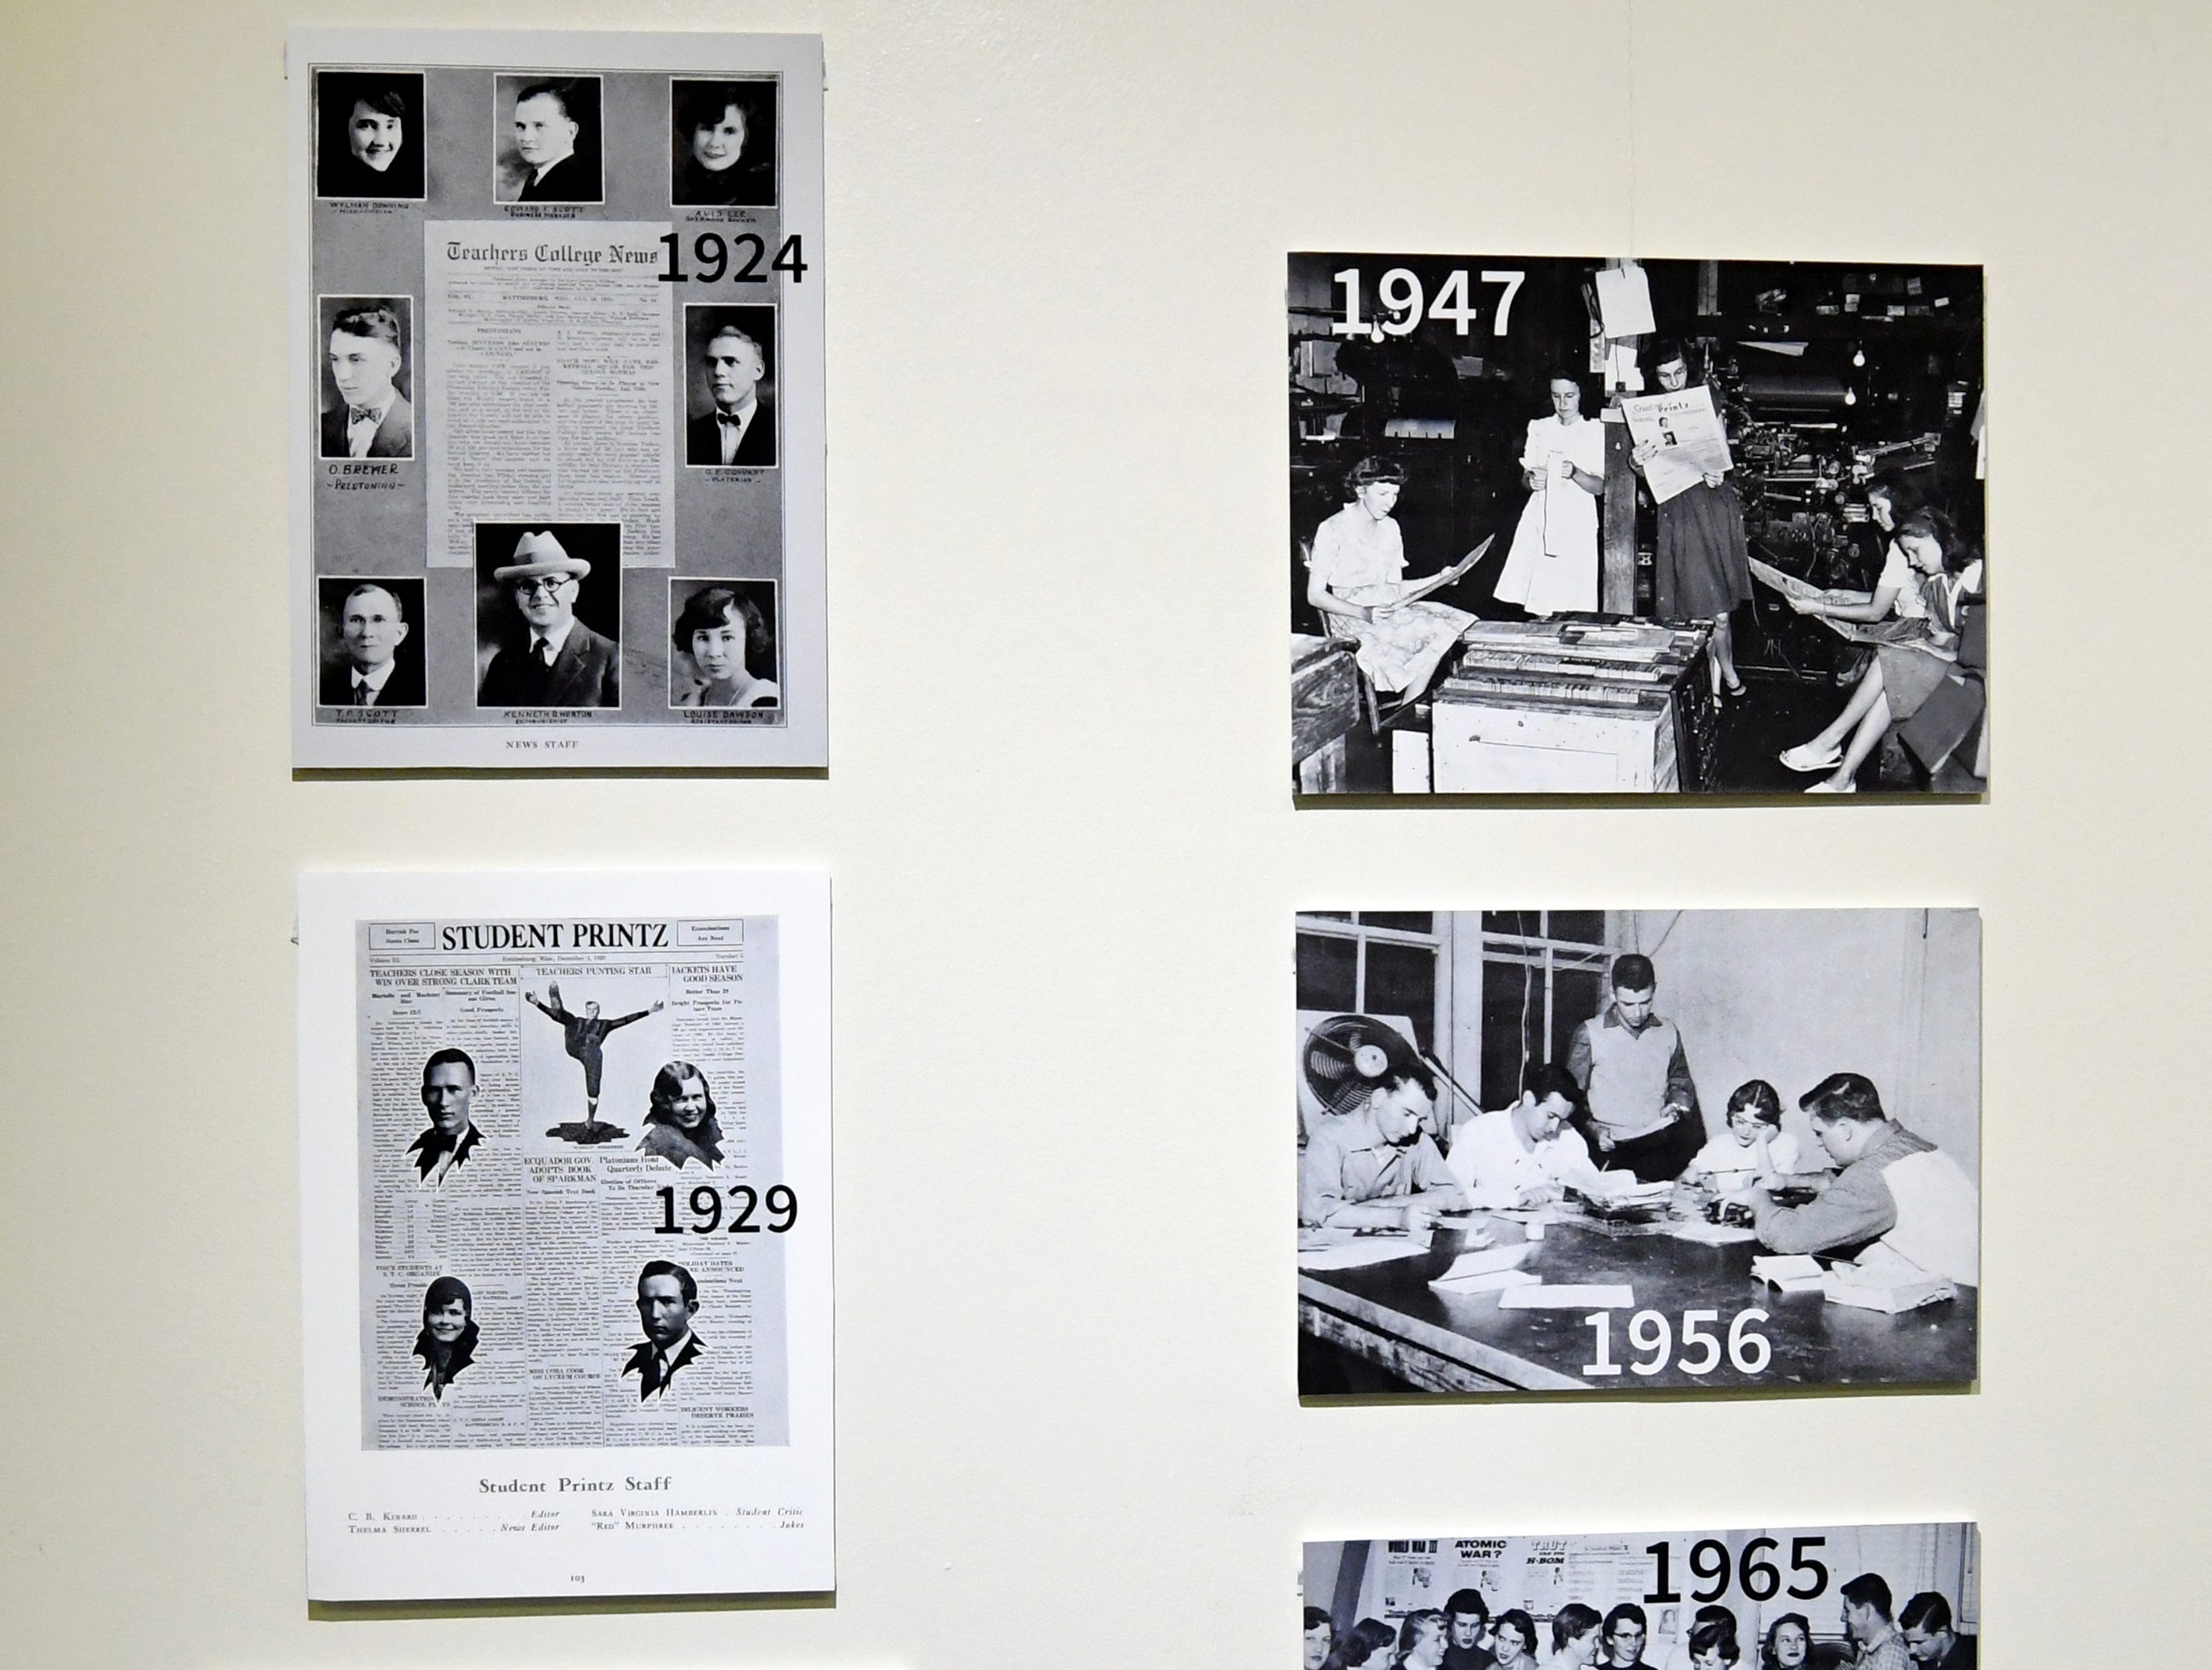 The Southern Miss student newspaper, the Student Printz, celebrates 100 years in December.